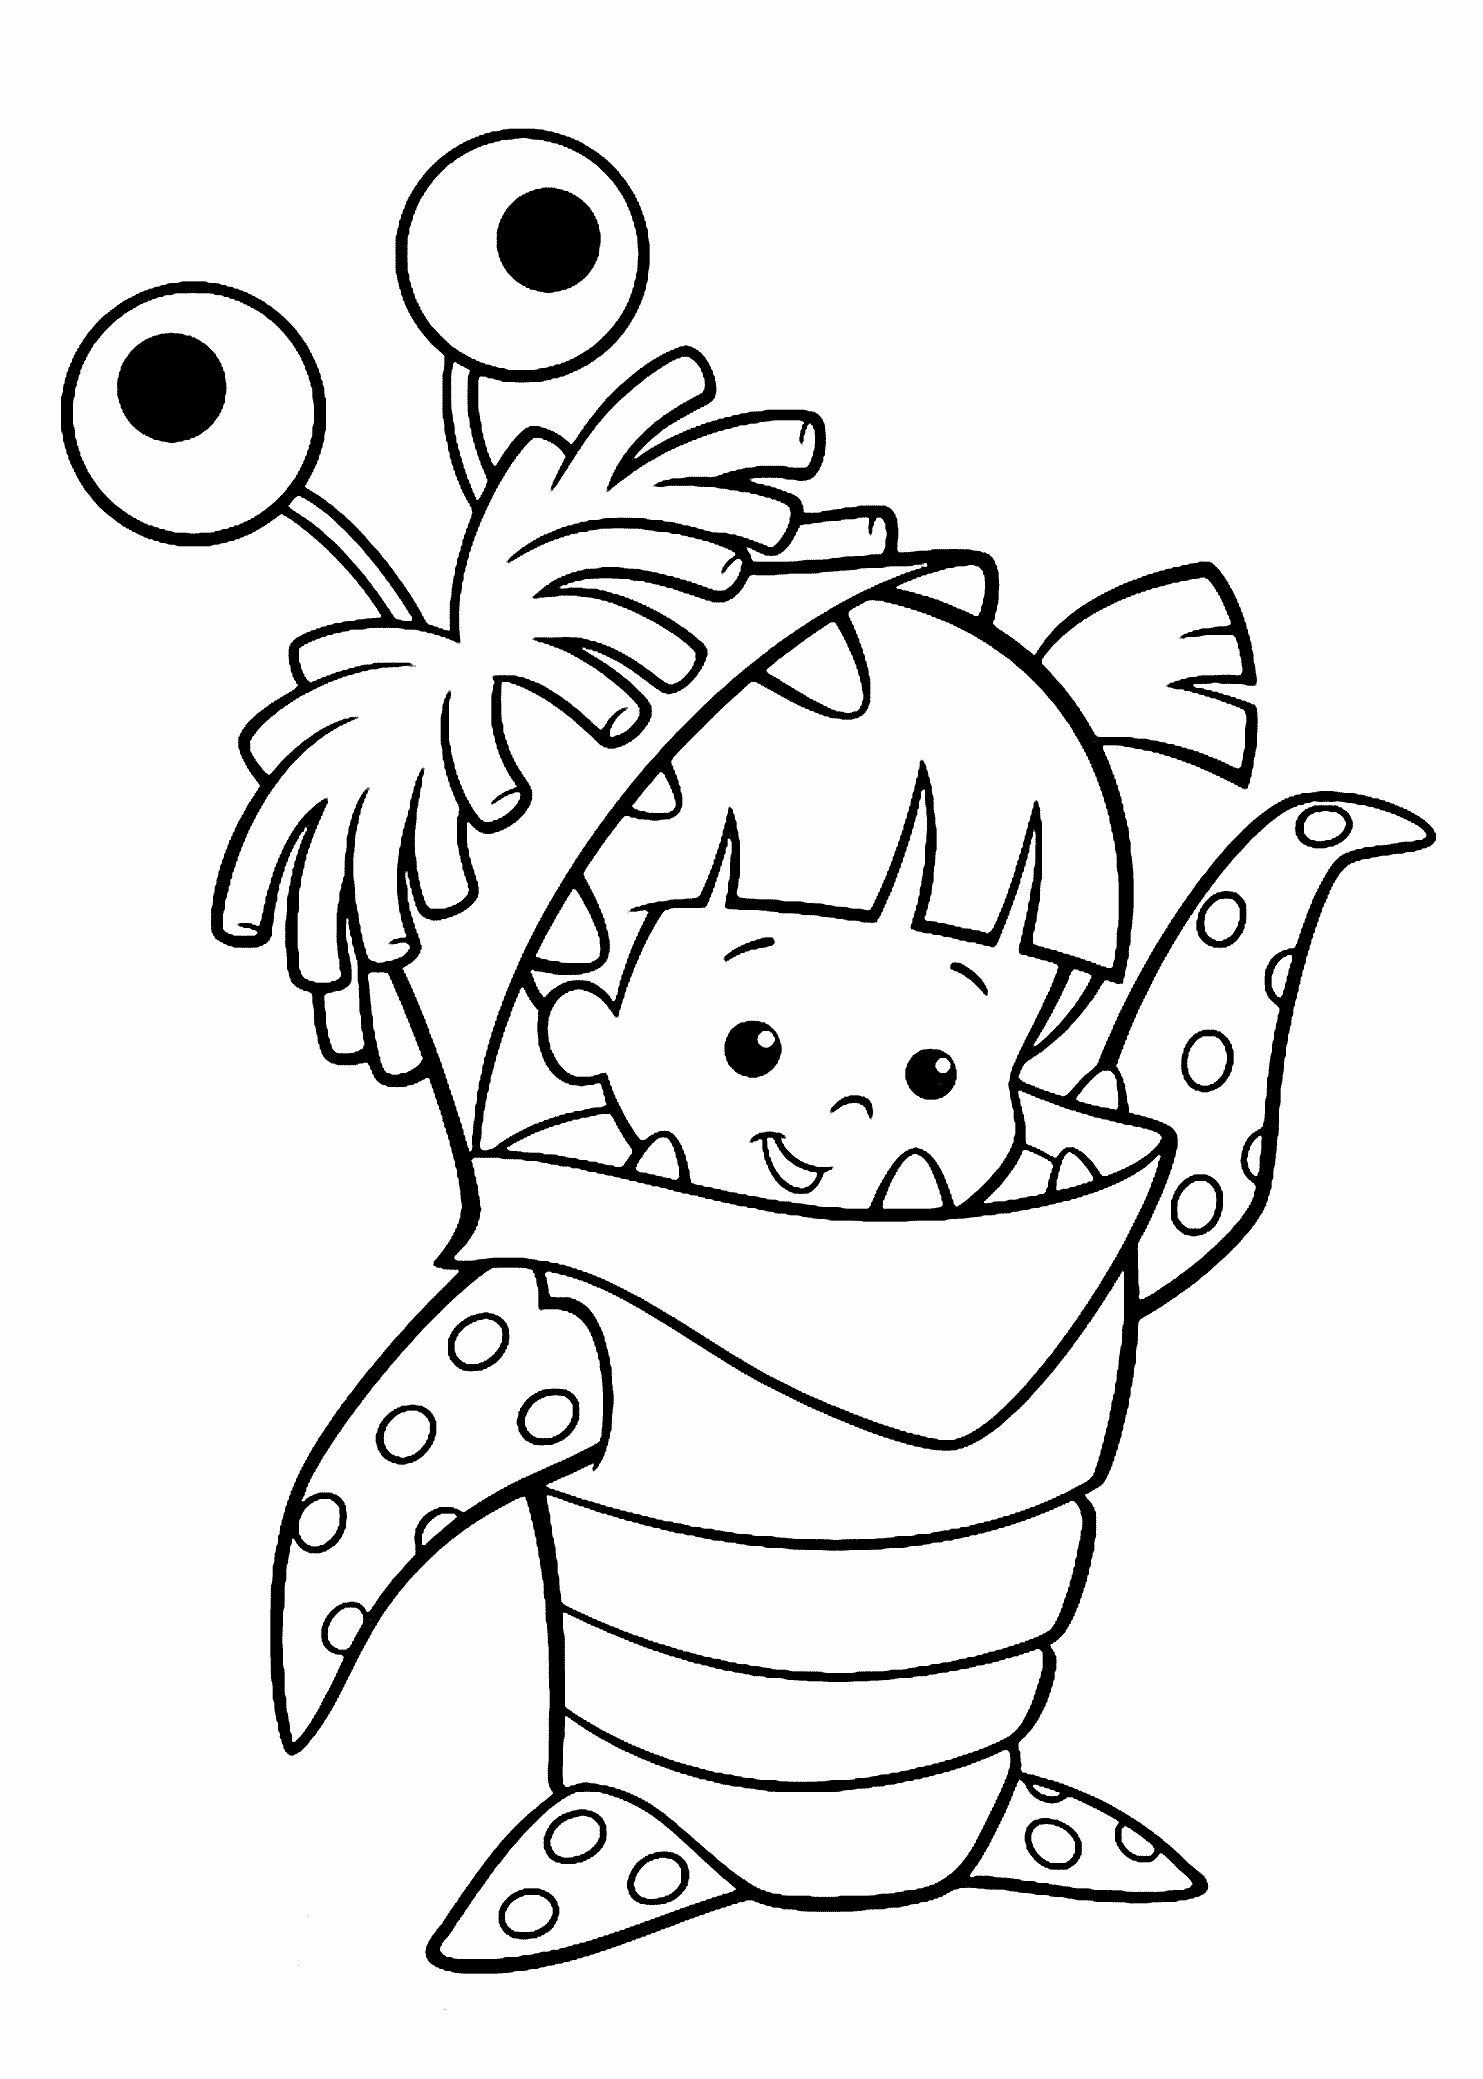 Monster Coloring Pages for Kids Unique Free Printable Monster